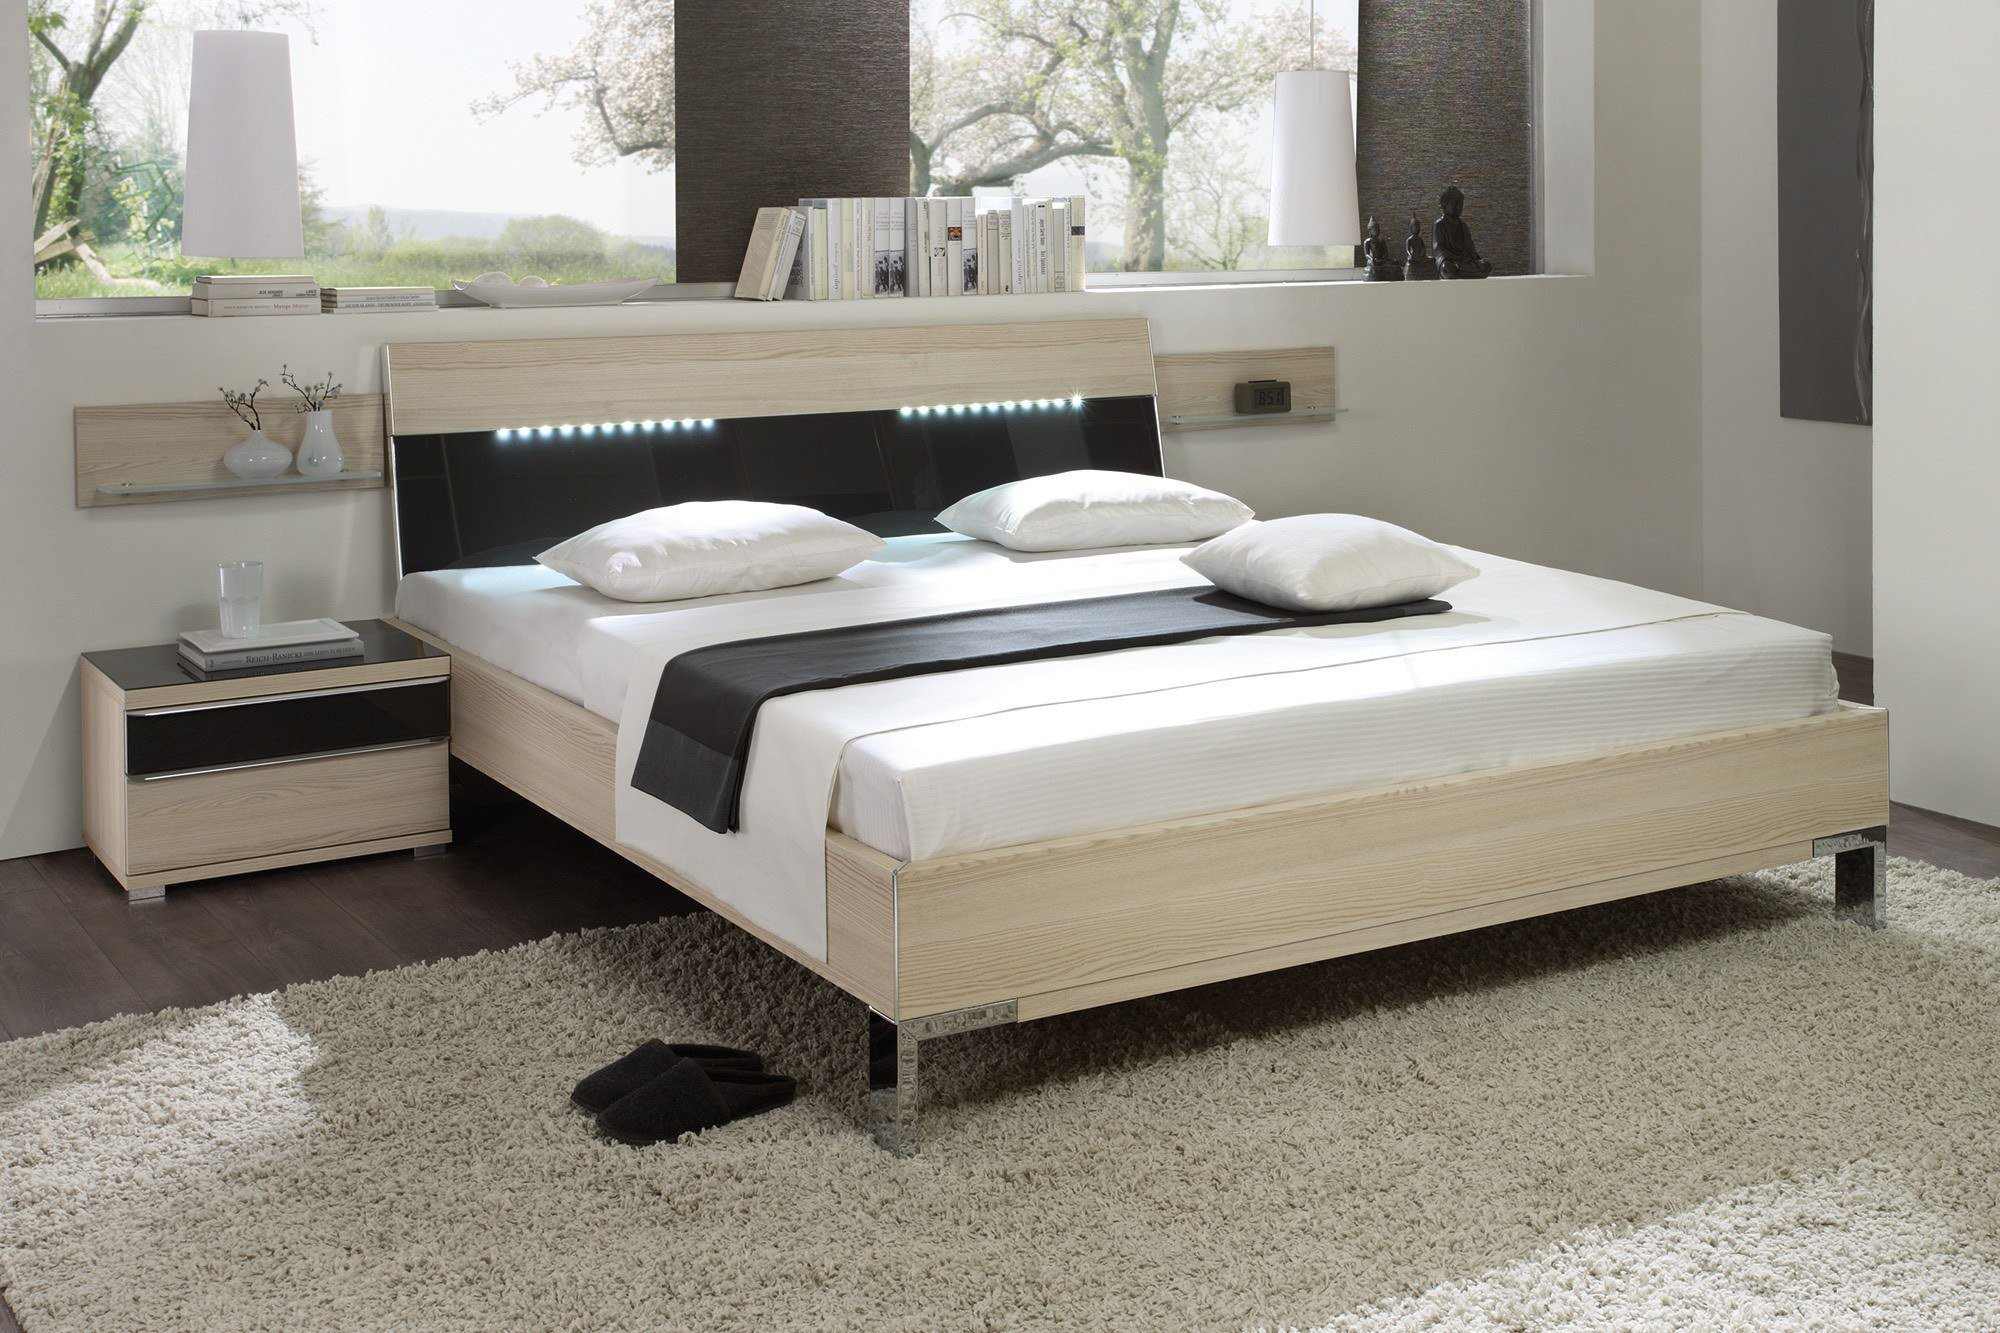 staud sinfonie plus bett sibiu l rche anthrazitglas m bel letz ihr online shop. Black Bedroom Furniture Sets. Home Design Ideas